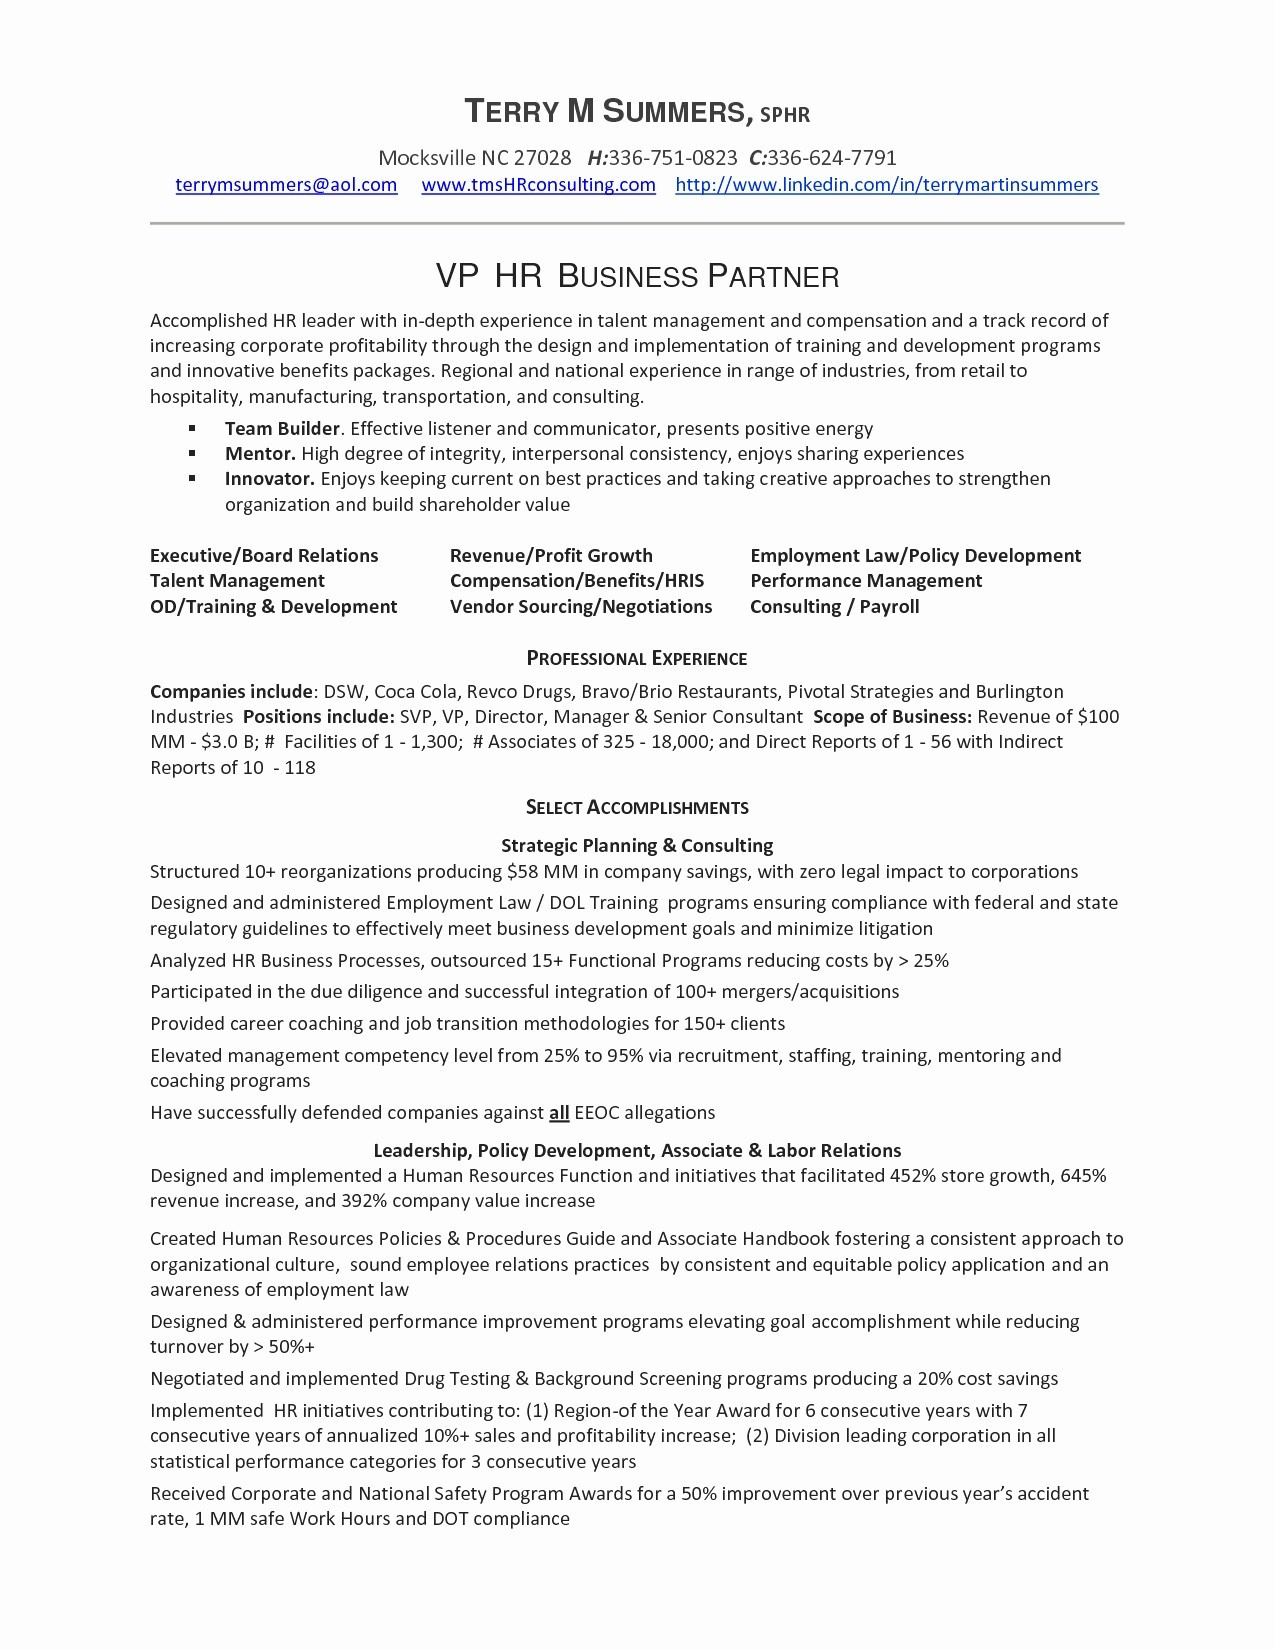 Restaurant General Manager Resume - Restaurant General Manager Resume Best General Manager Resume Sample